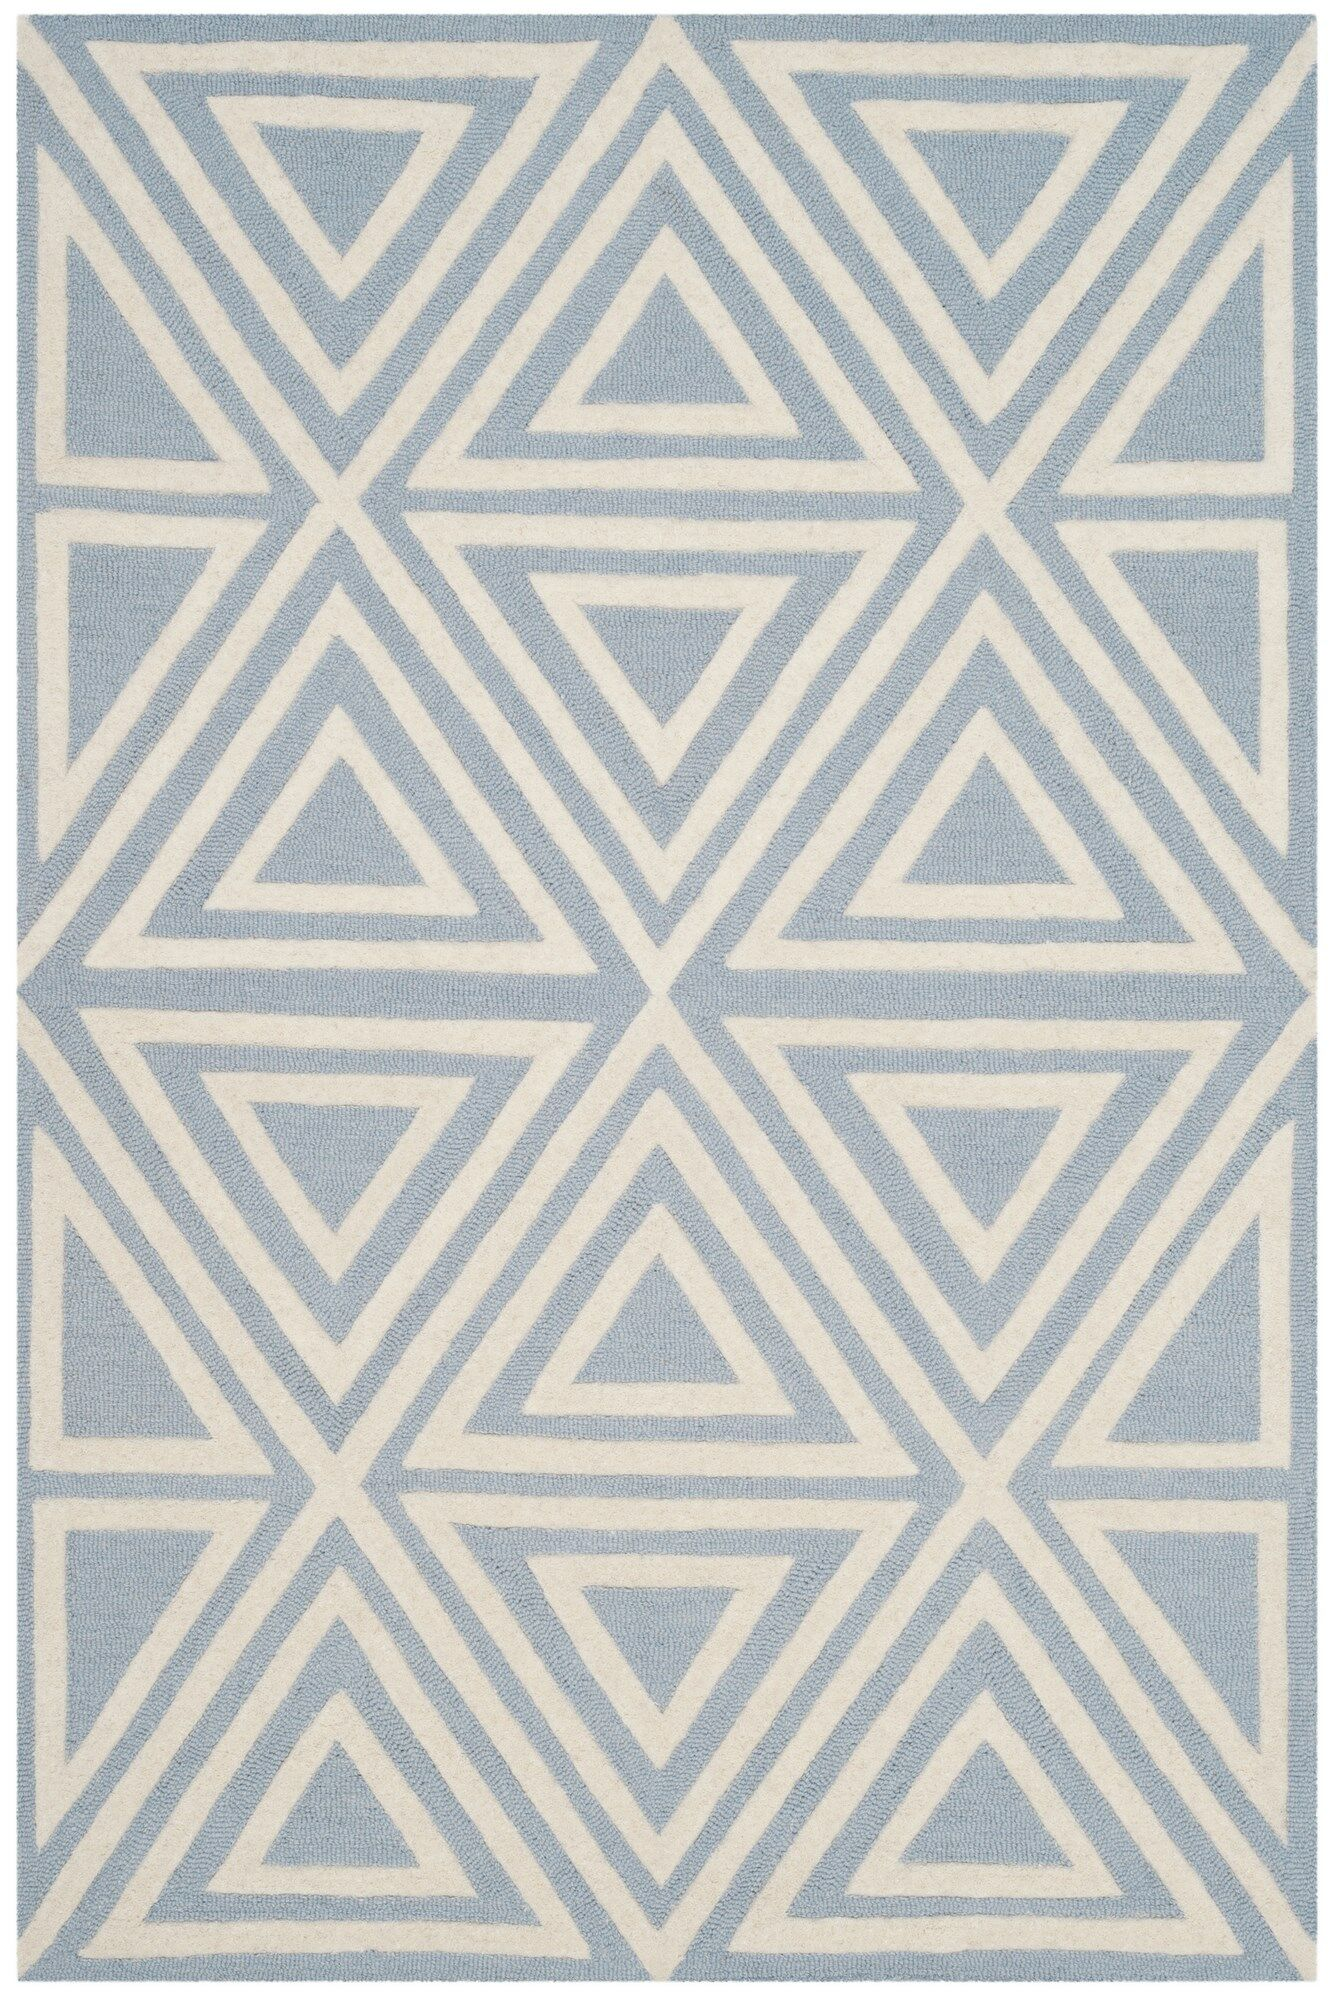 Claro Triangles Hand-Tufted Blue/Ivory Area Rug Rug Size: Square 5'